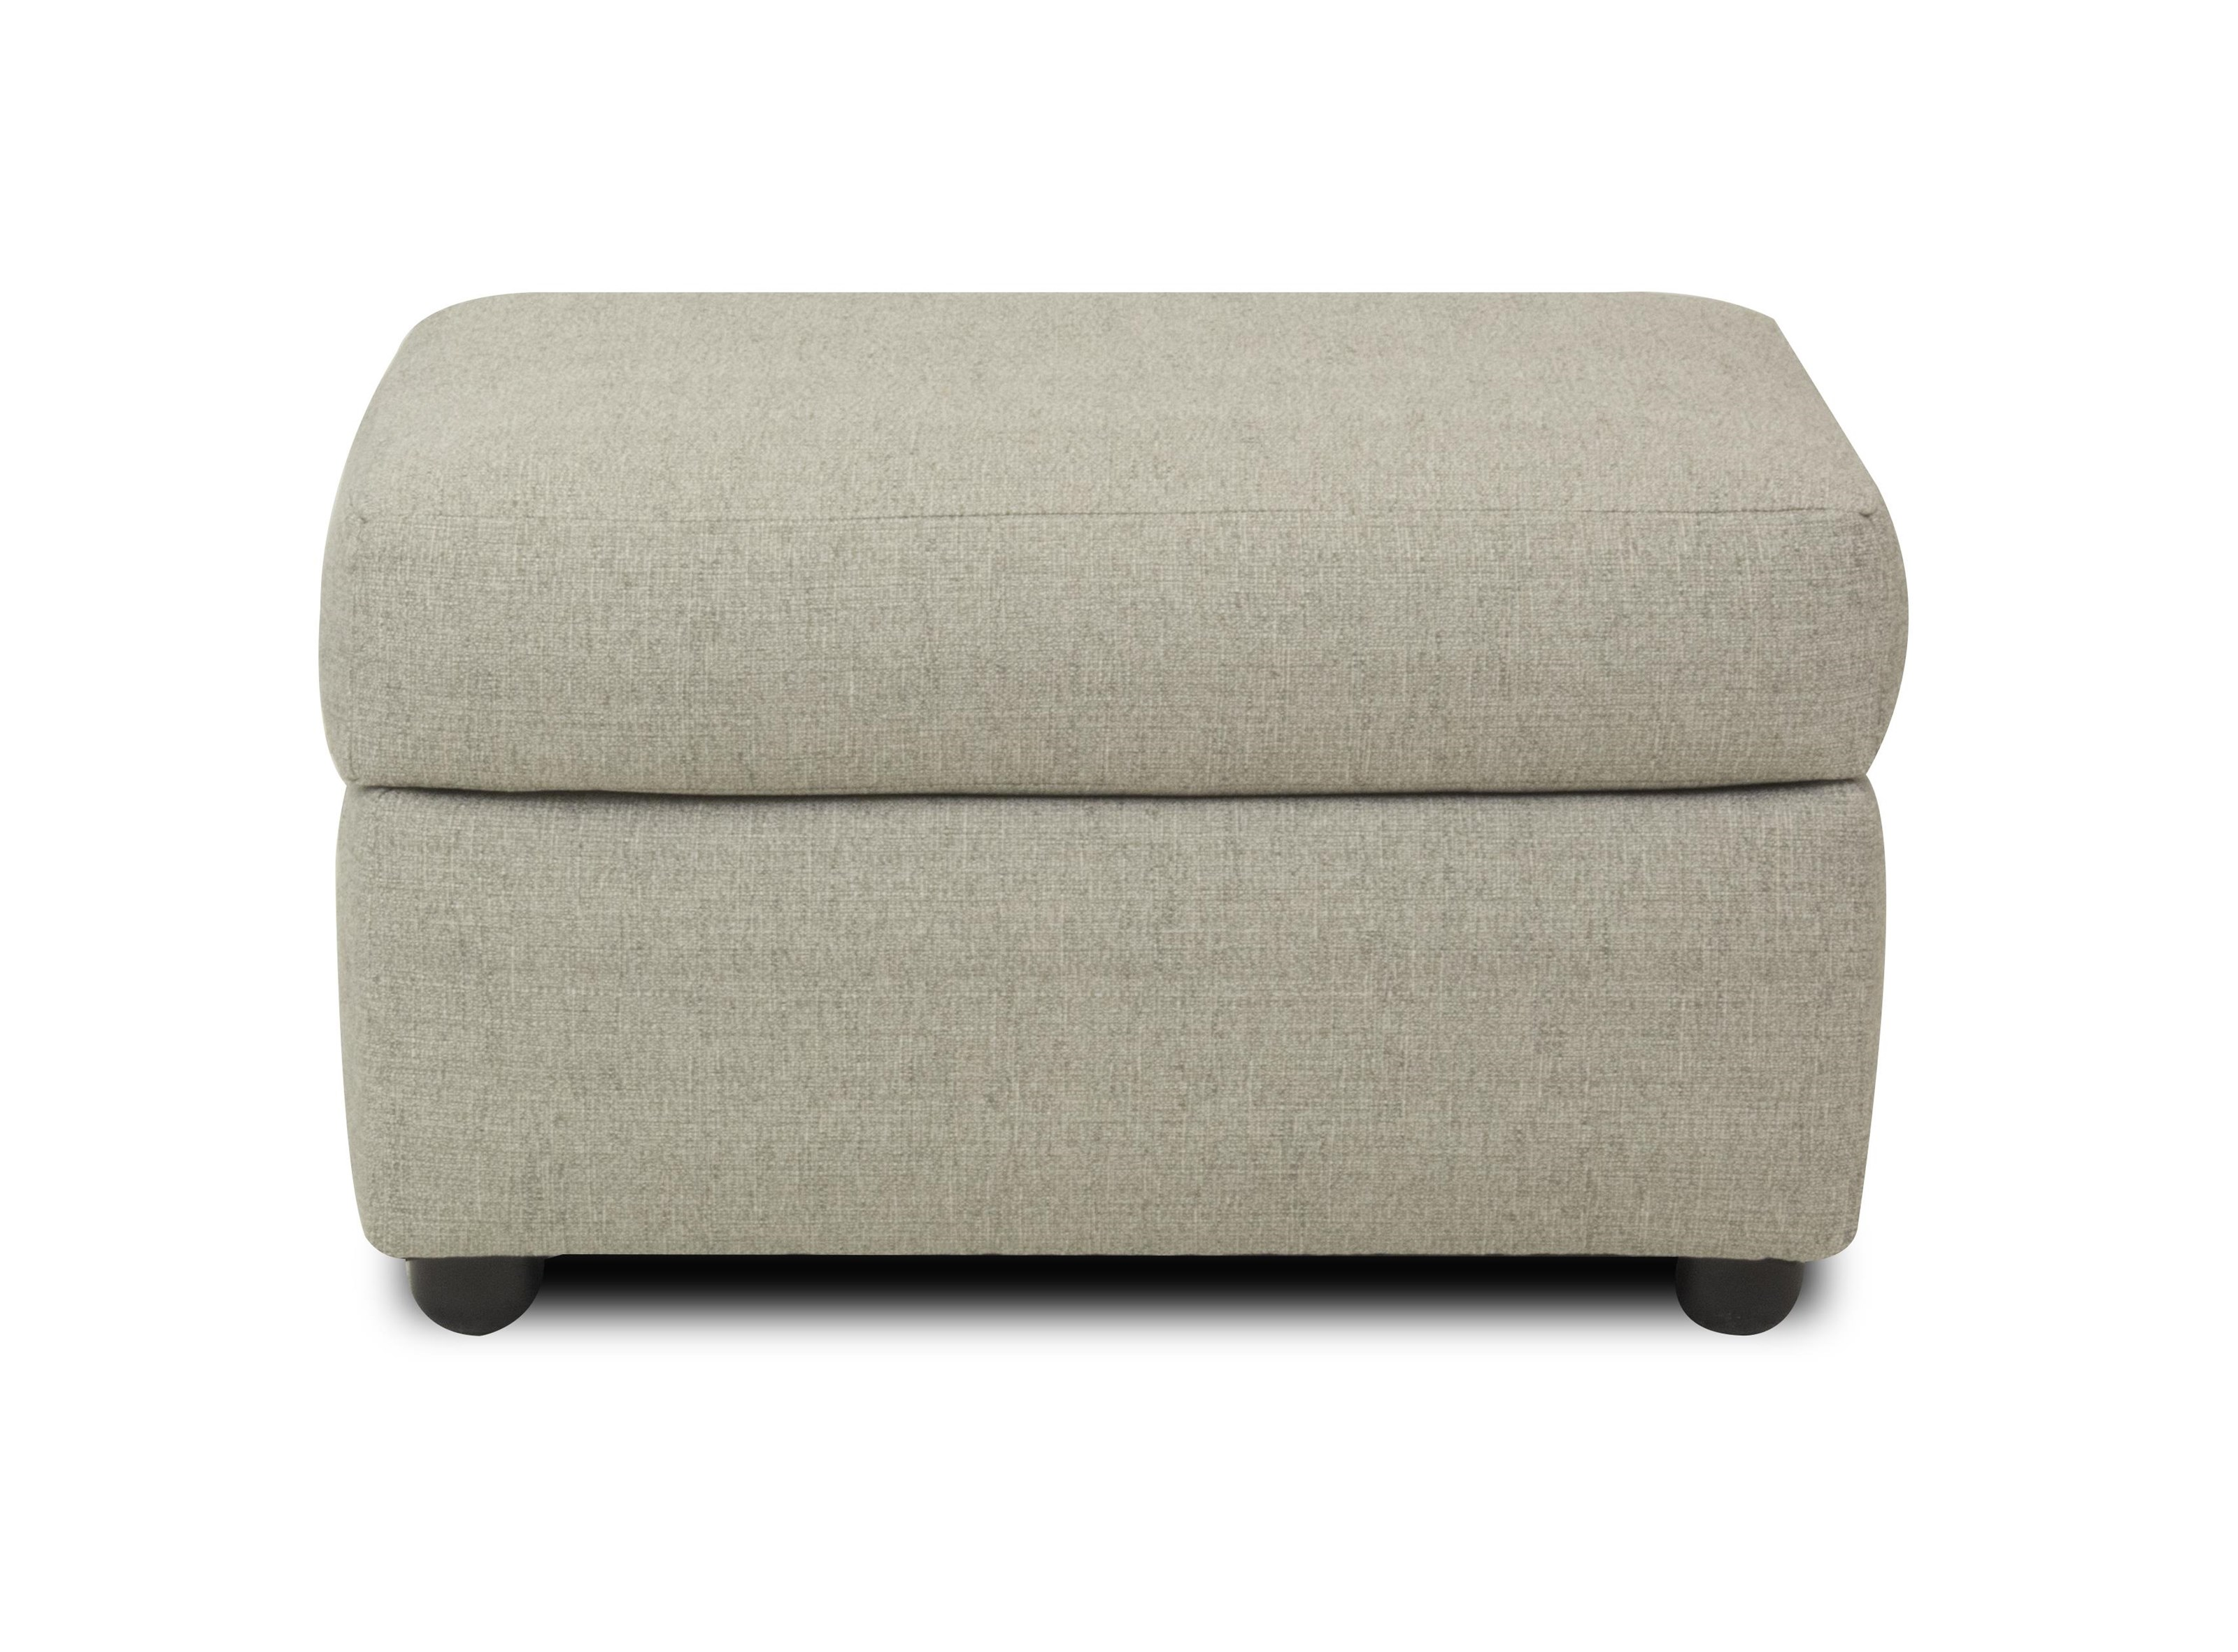 Trisha Yearwood Home Collection by Klaussner Atlanta Ottoman - Item Number: 17278-O